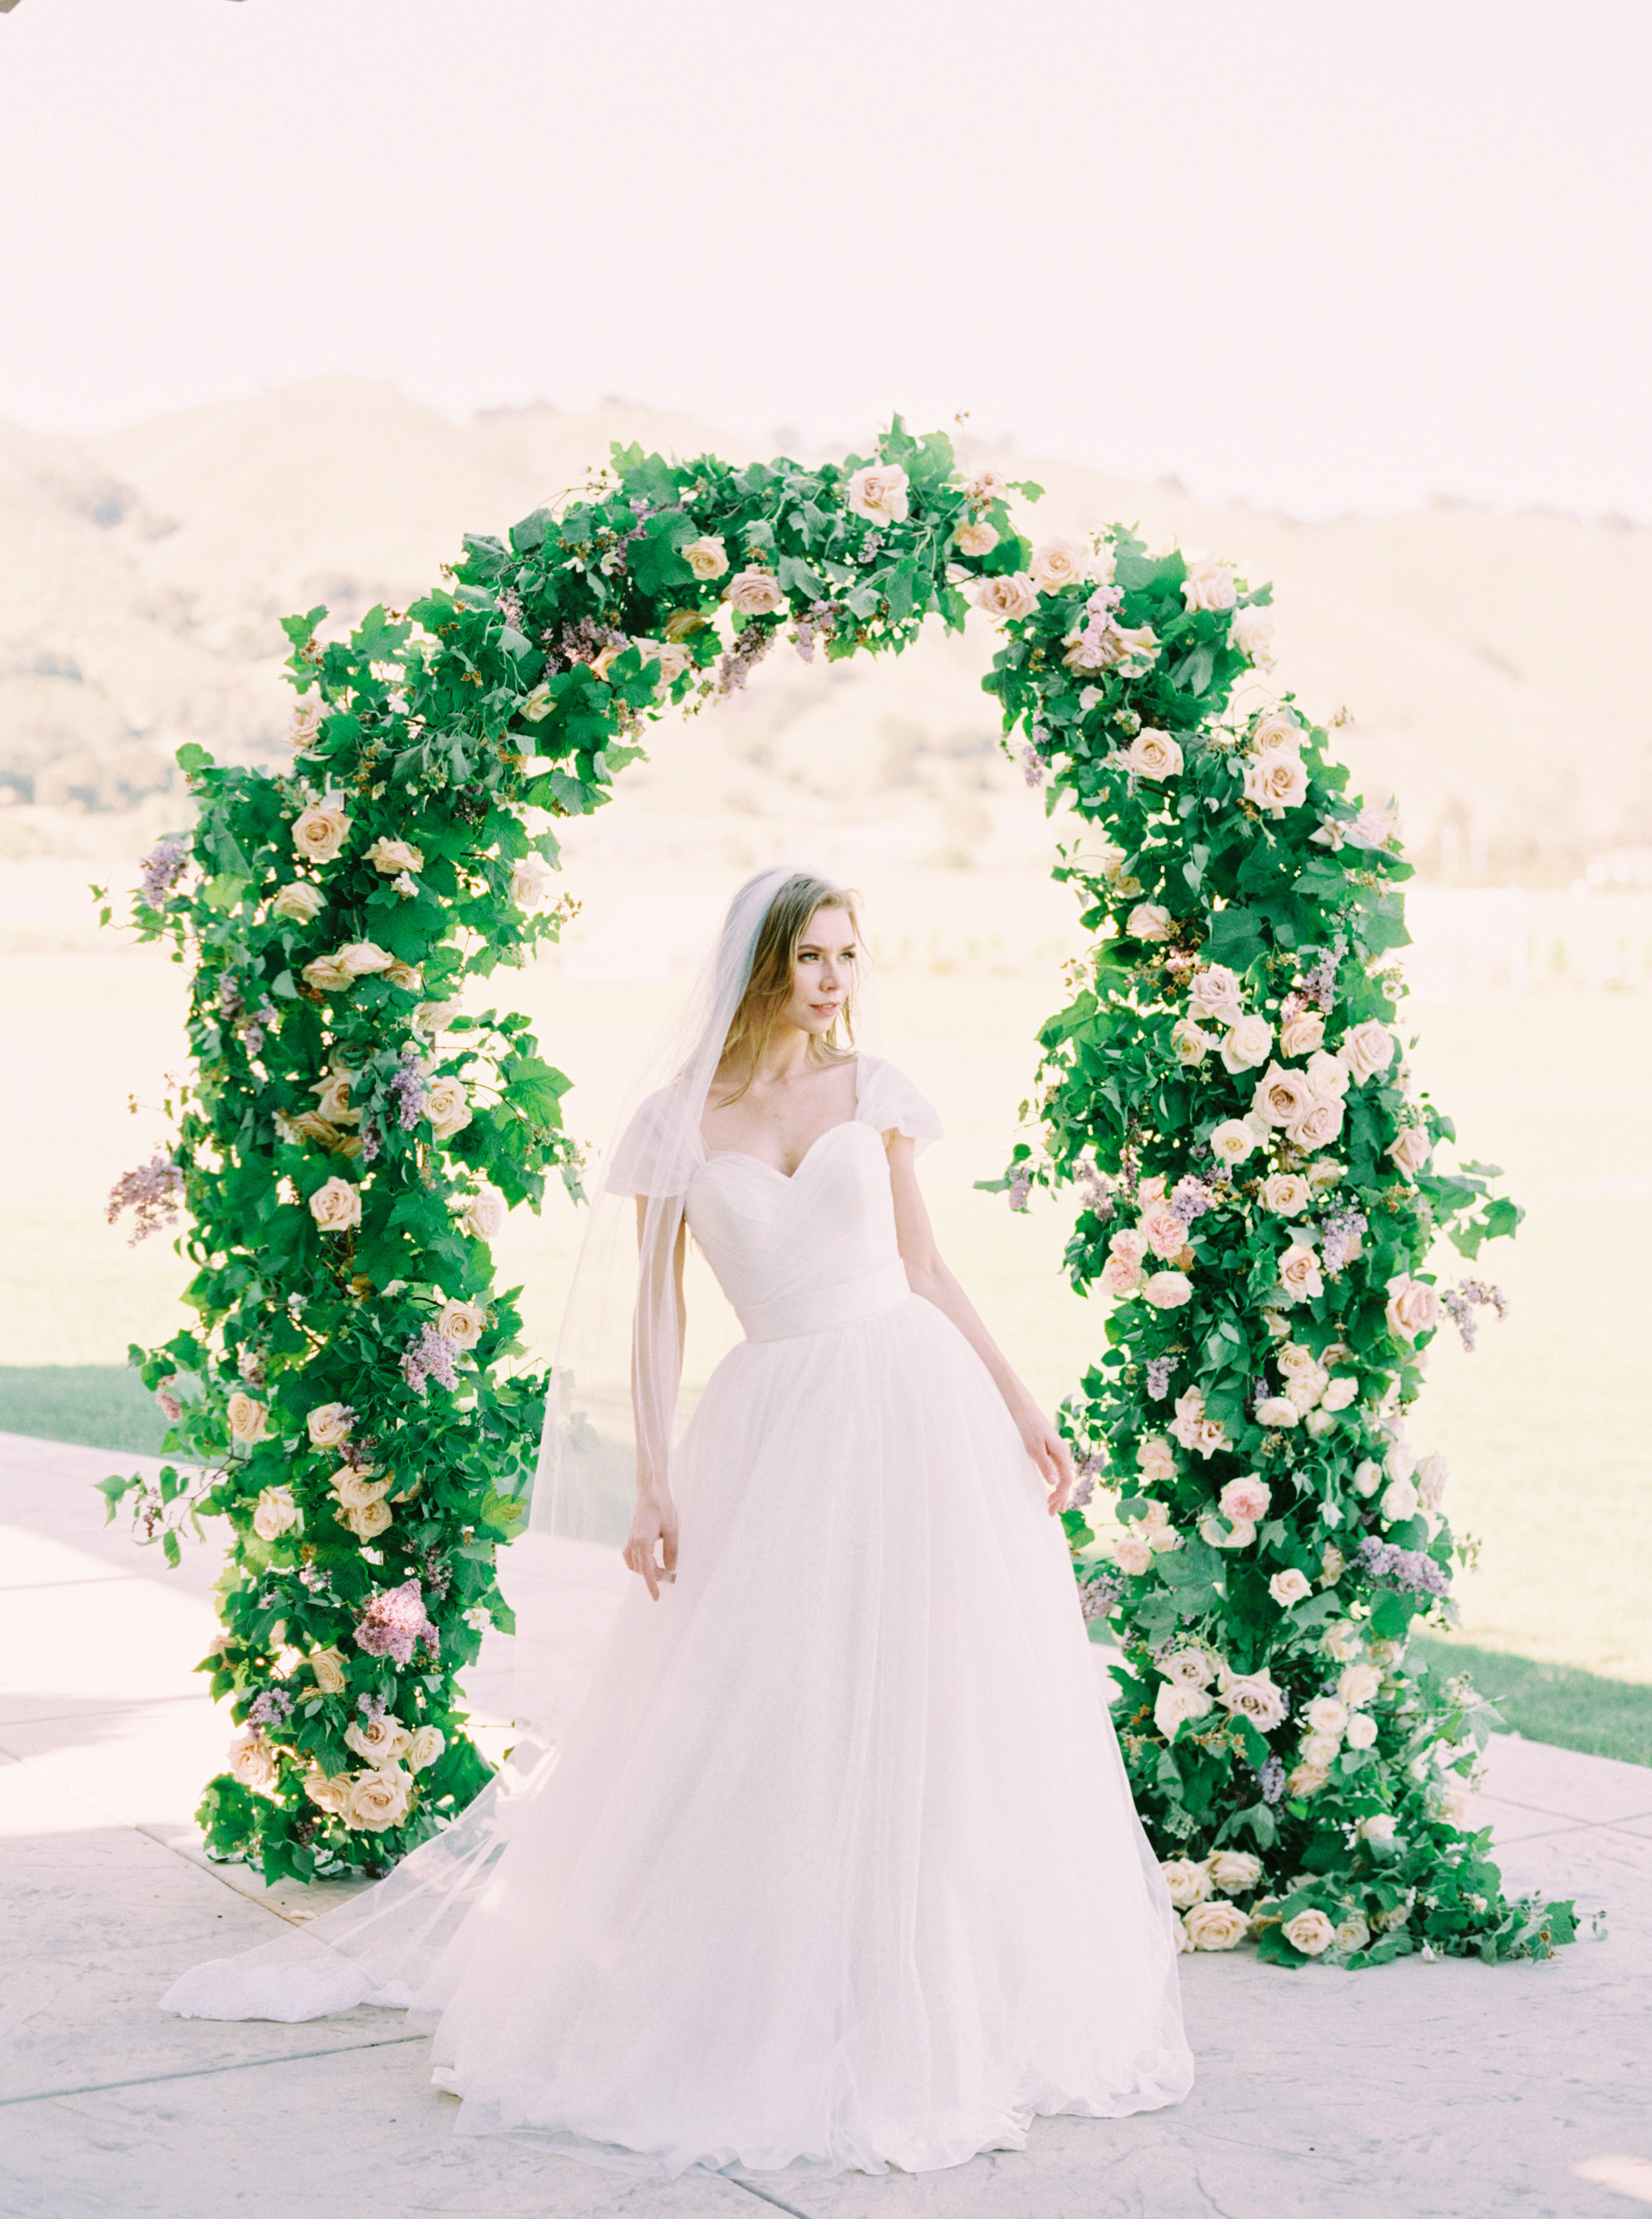 This-Love-of-Yours-Kirigin-Cellars-Flower-Arch-Styled-Shoot-106.jpg